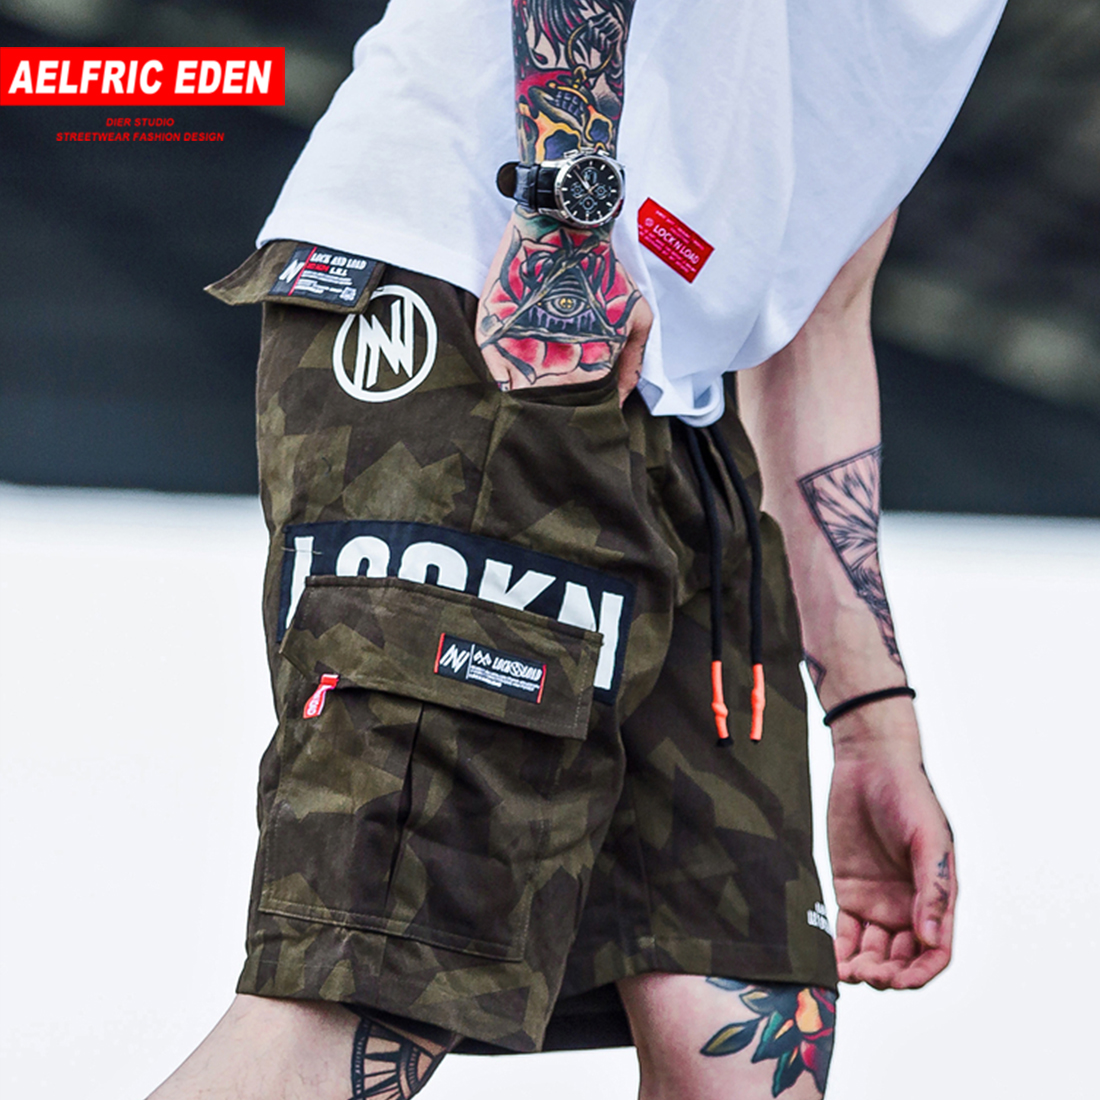 Aelfric Eden Cargo Shorts Men Hip Hop Summer Streetwear Letter Print Camouflage Print 2019 New Fashion Knee Length Short Joggers